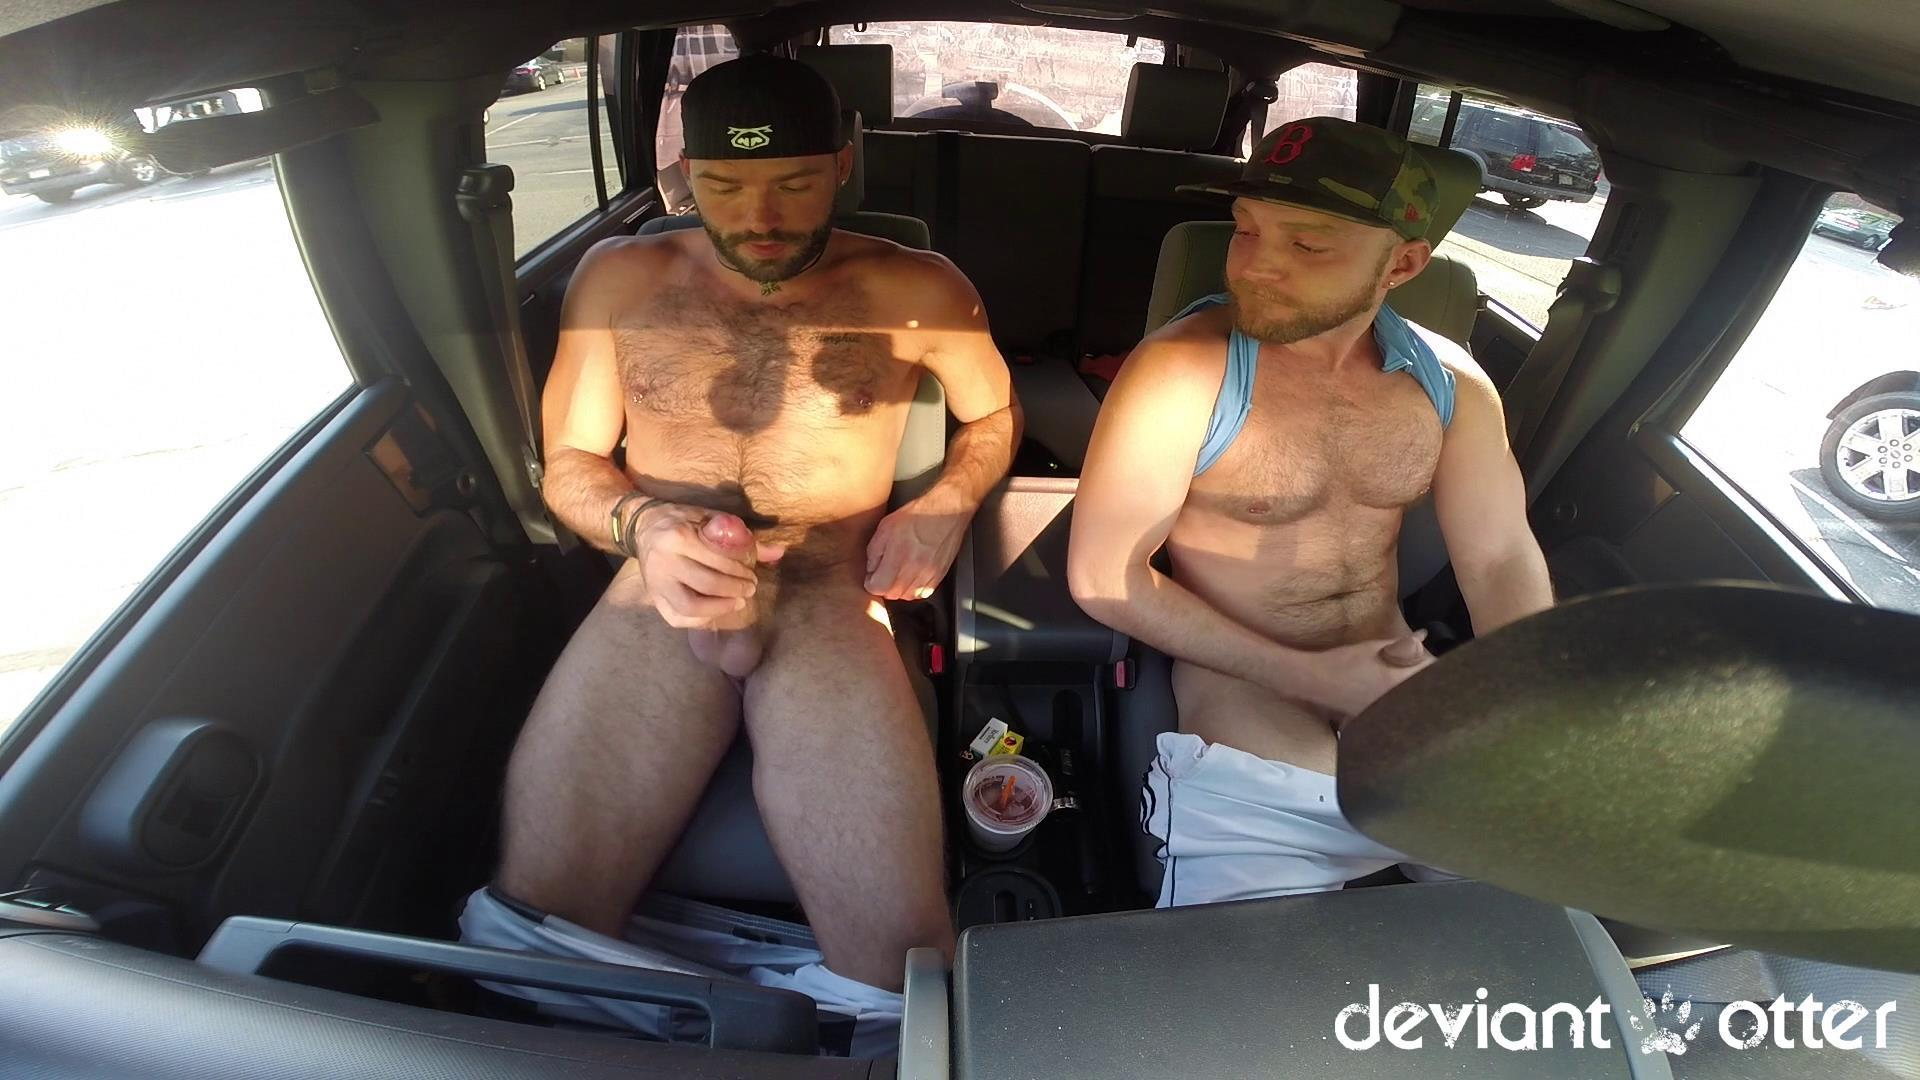 Deviant Otter Xavier Sucking Cock In Public Hairy Guys Amateur Gay Porn 11 Masculine Hairy Guys Sucking Each Others Cock In A Parking Lot